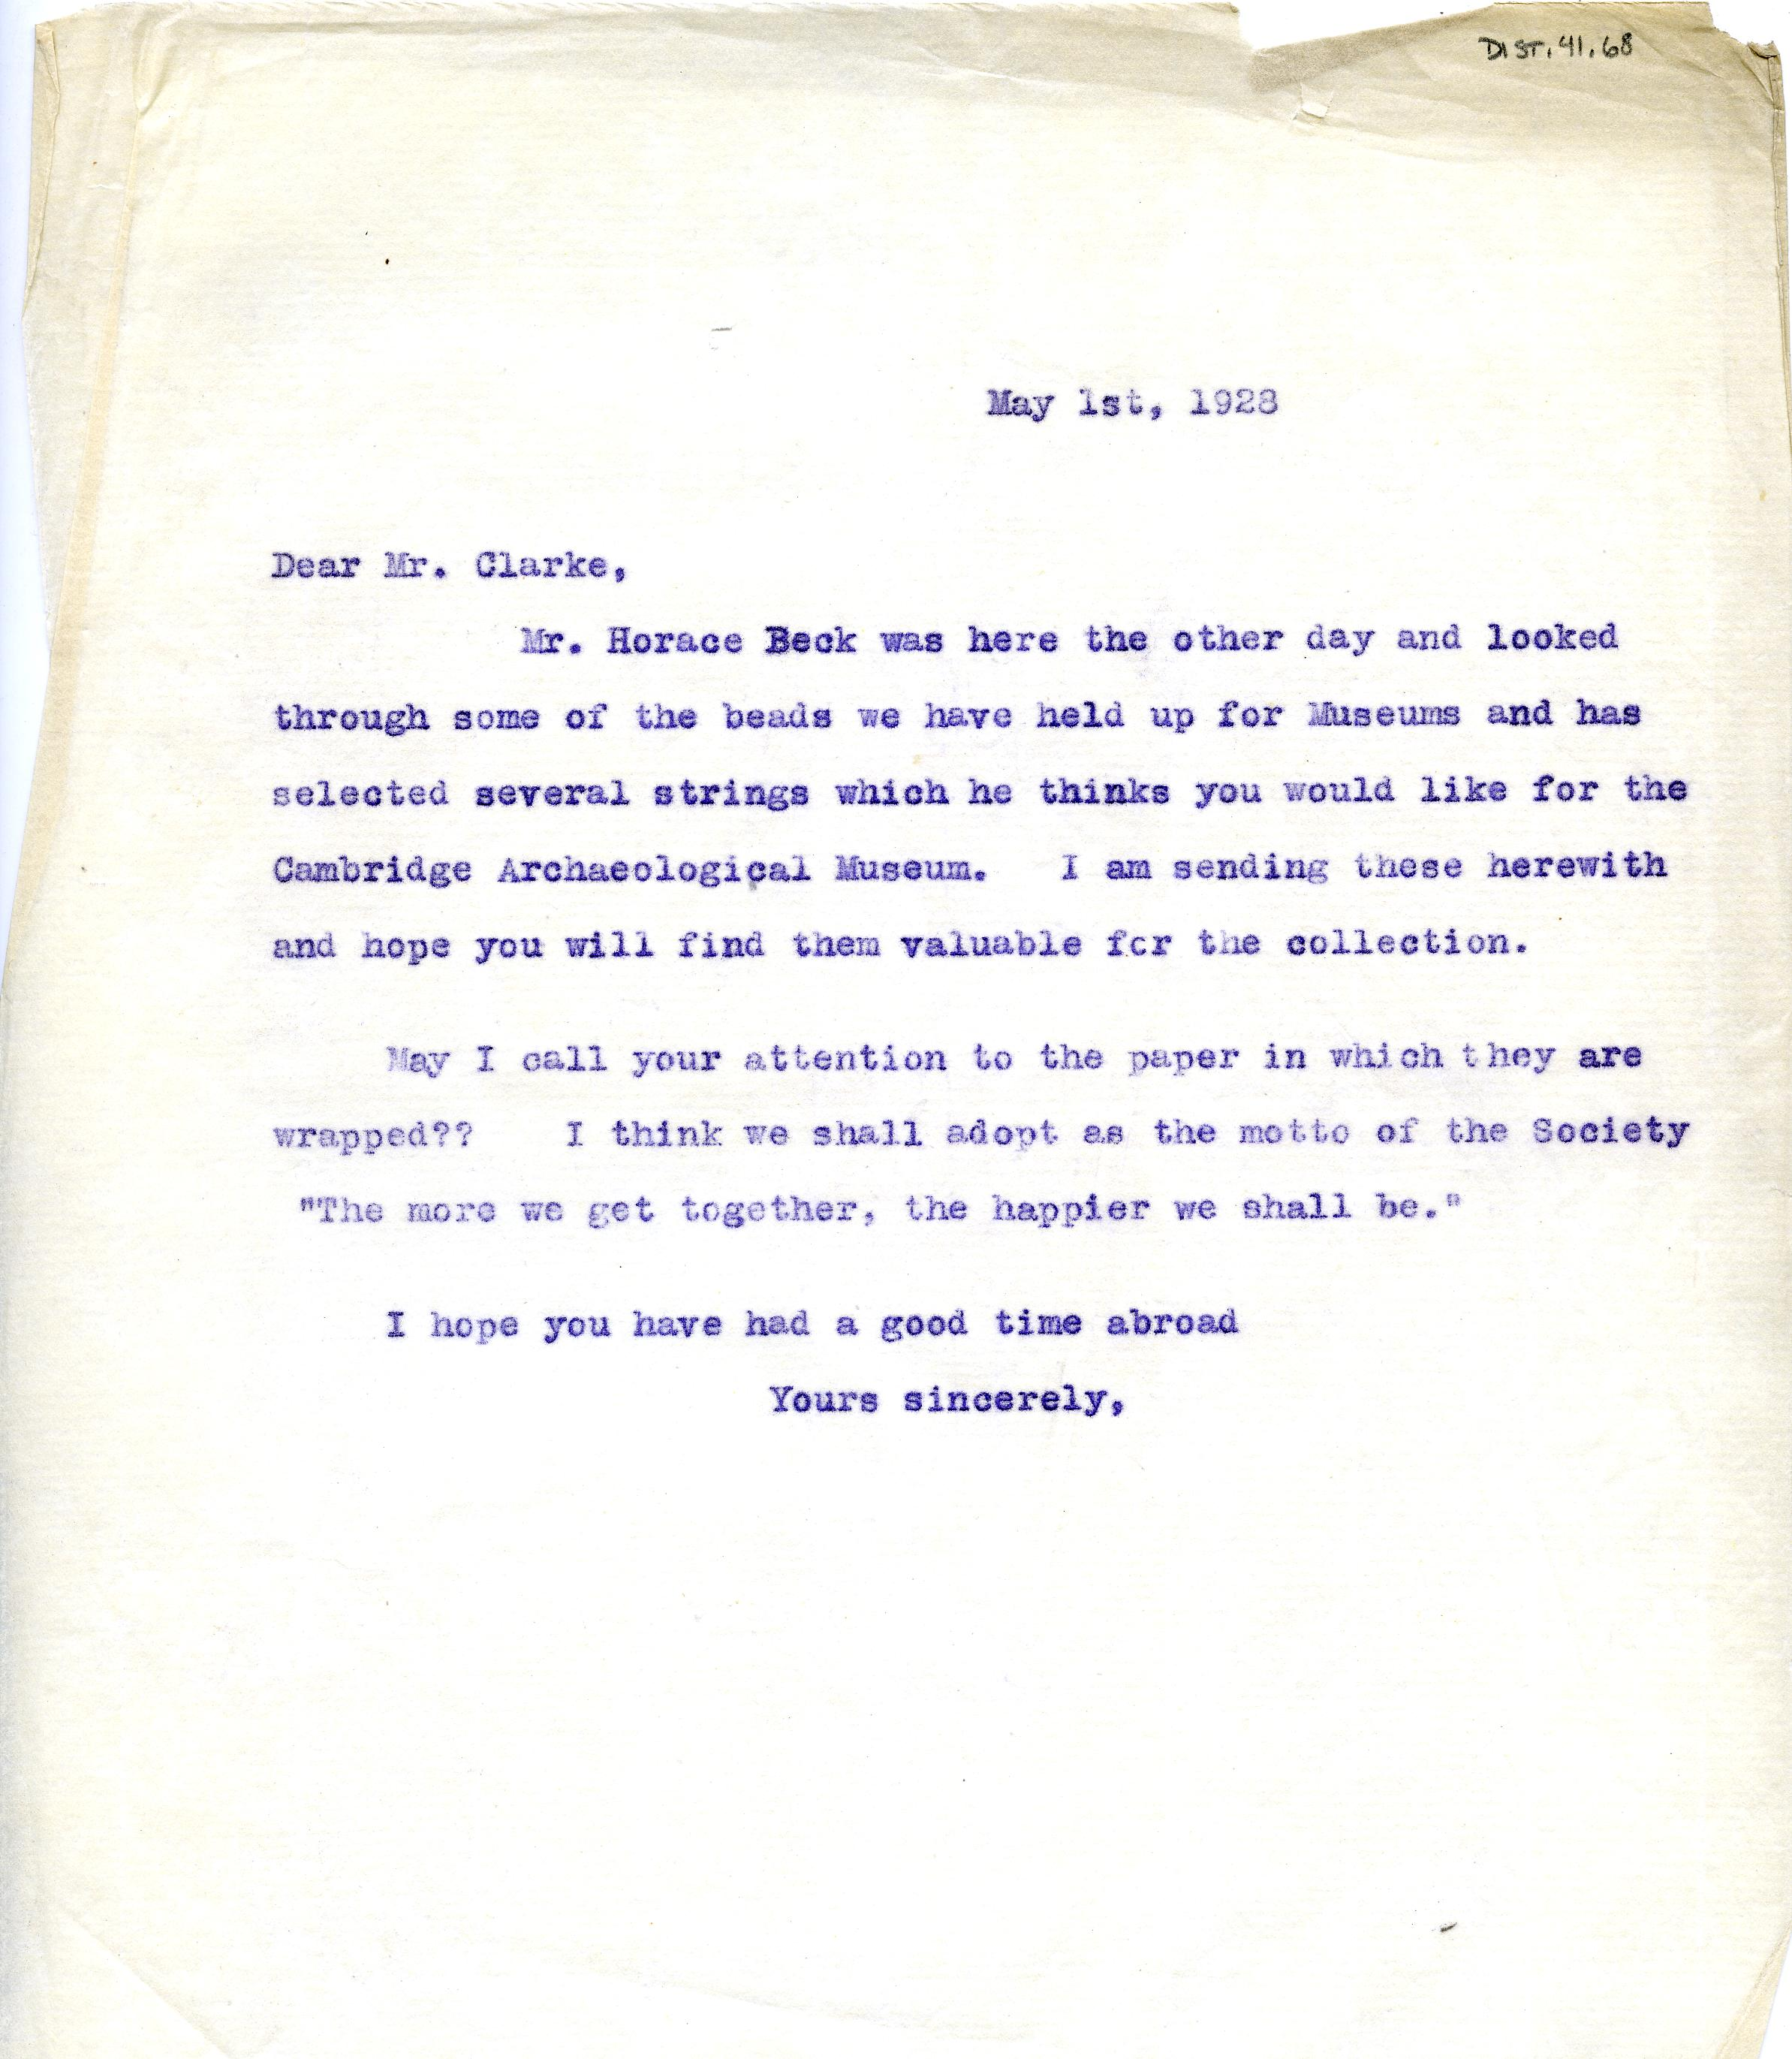 1922-76 Miscellaneous correspondence with museums DIST.41.68